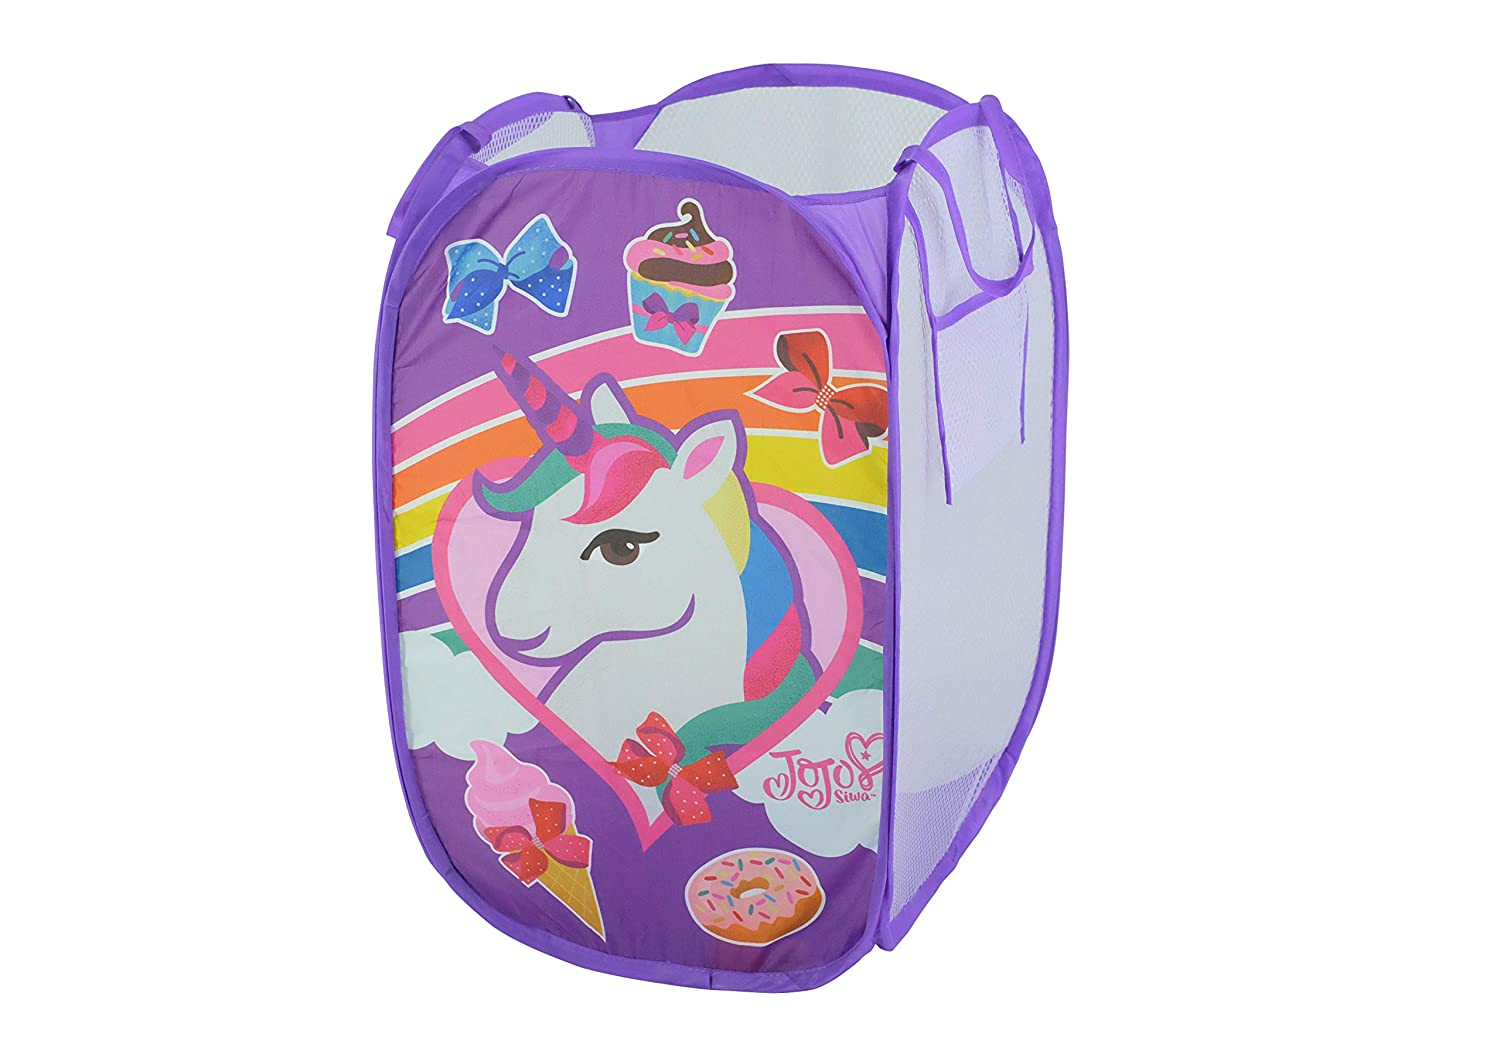 Nickelodeon JoJo Siwa Pop Up Laundry Bin, Purple